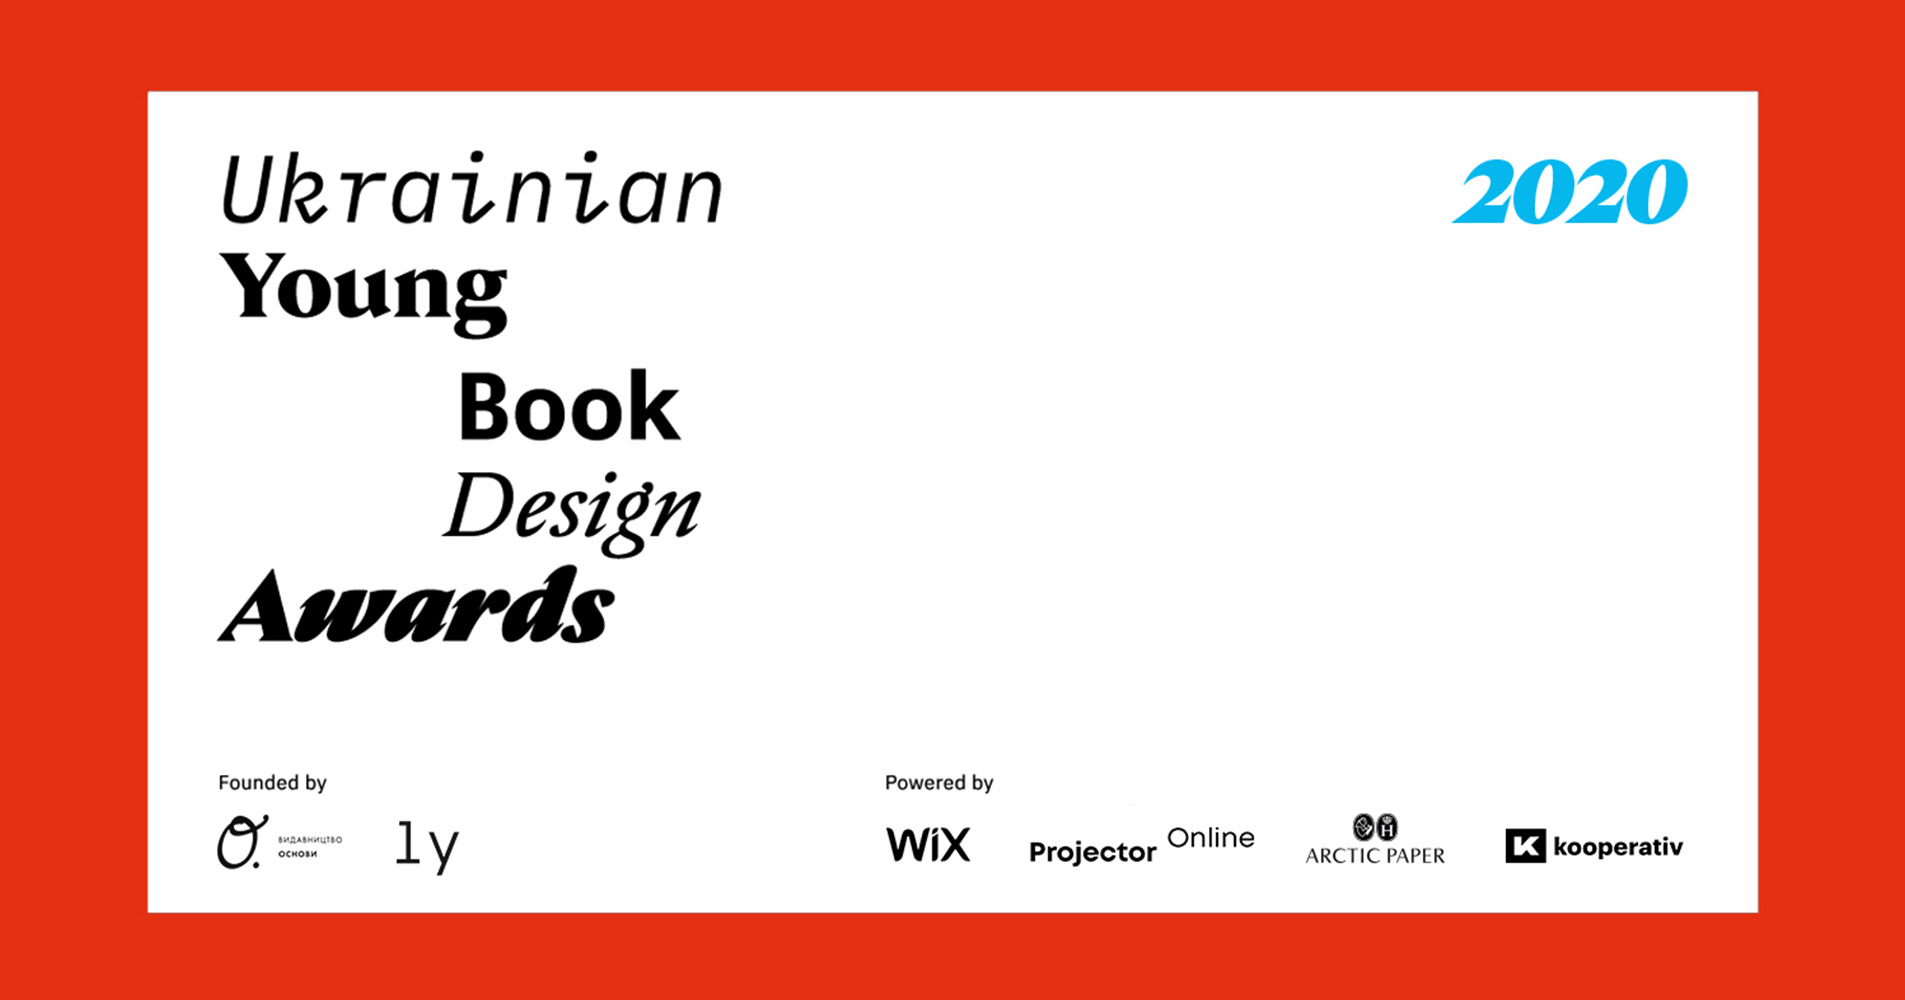 прийом робіт на Ukrainian Young Book Design Awards 2020